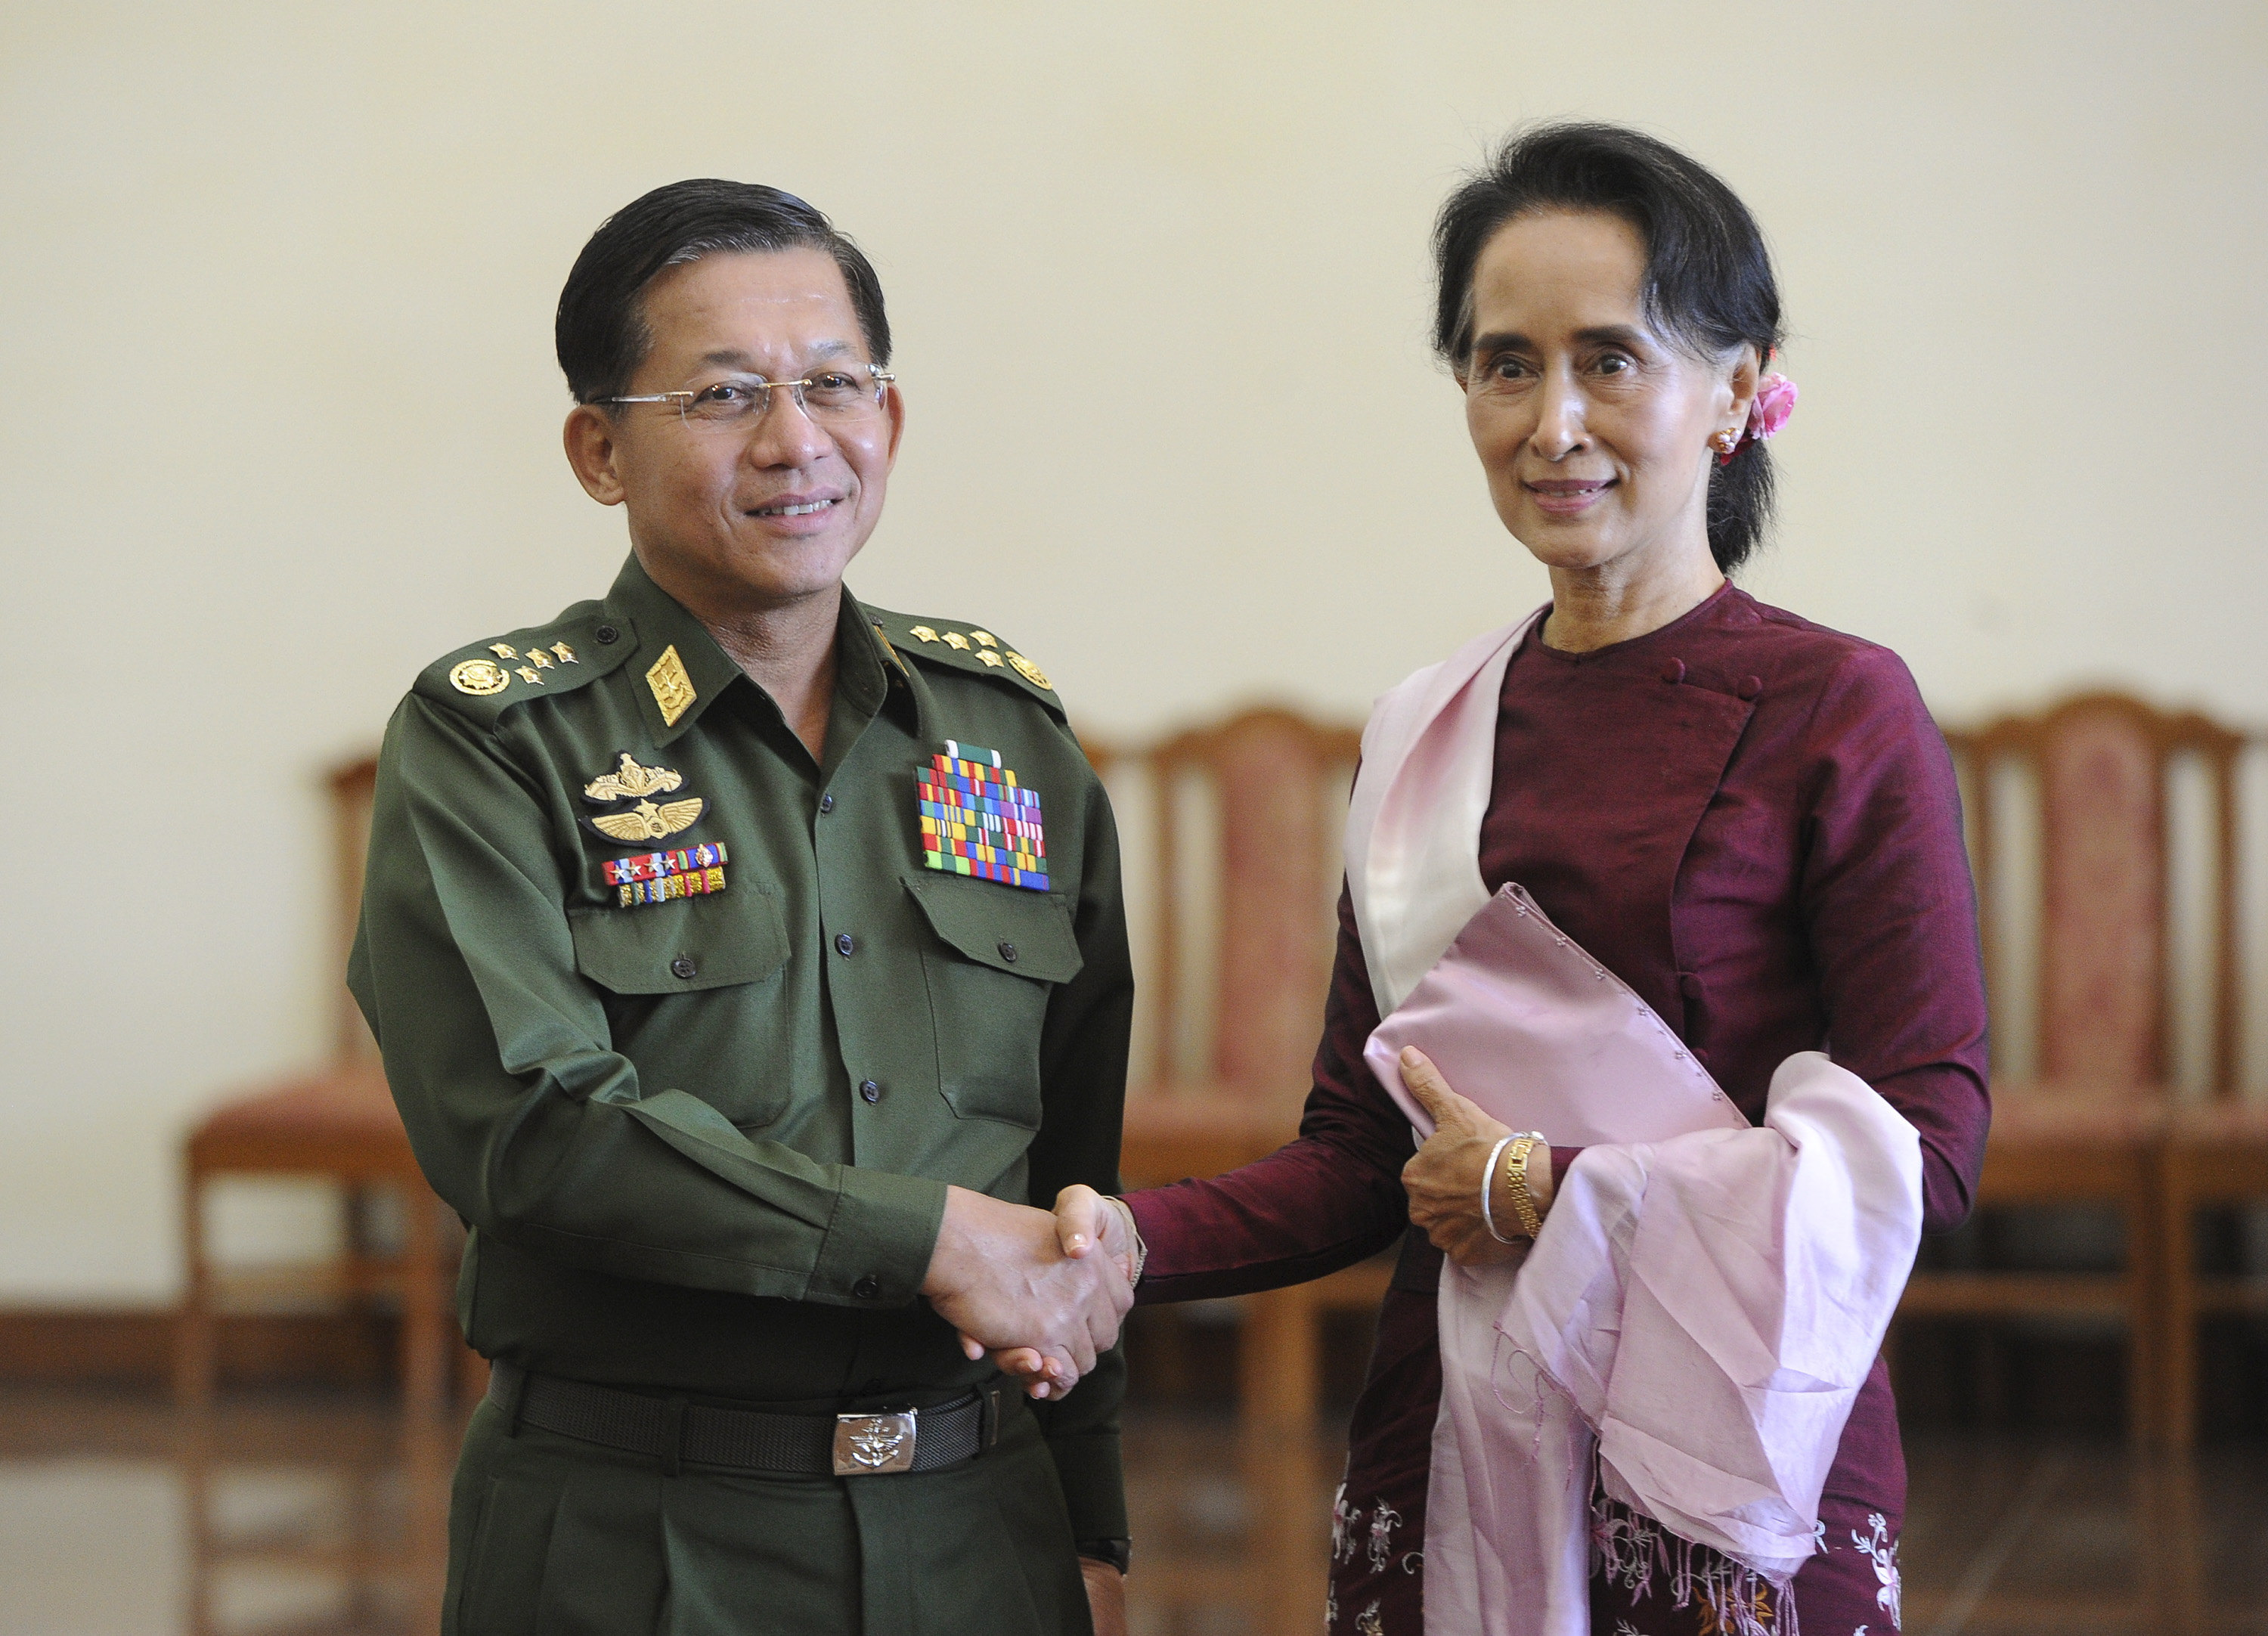 Burma's Commander in Chief Min Aung Hlaing and National League for Democracy (NLD) party leader Aung San Suu Kyi in Naypyidaw, Burma, on Dec. 2, 2015